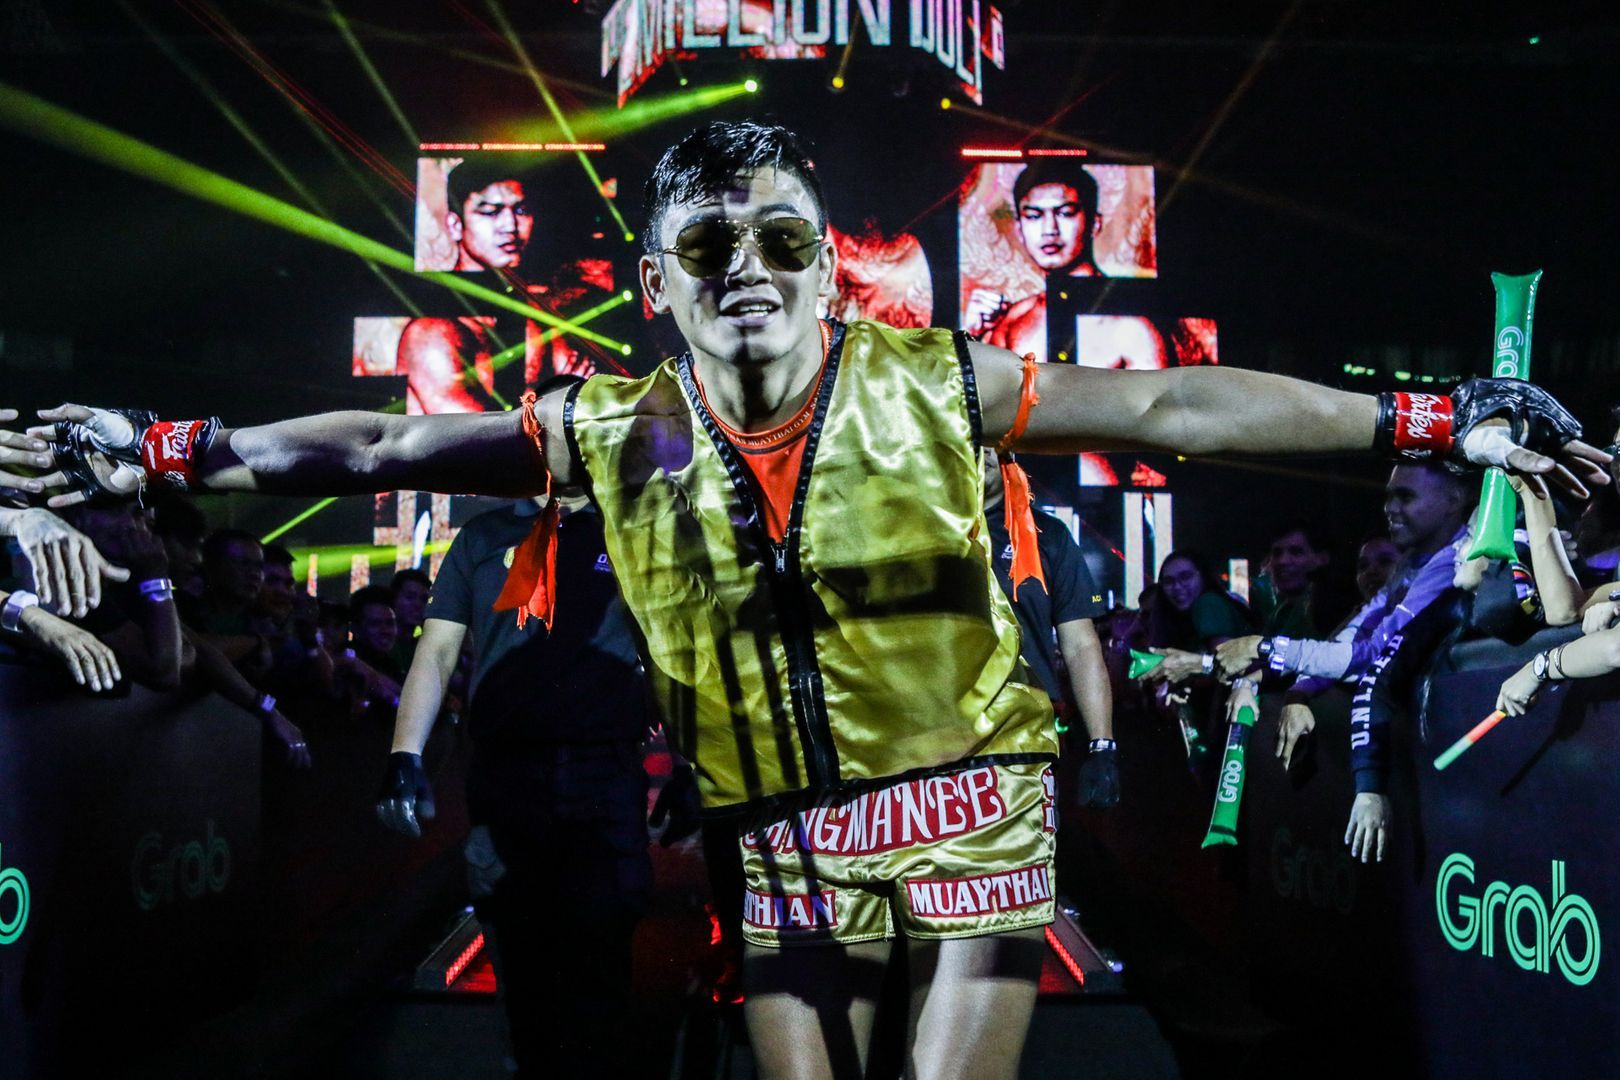 Sangmanee Sathian MuayThai makes his entrance at ONE: MASTERS OF FATE